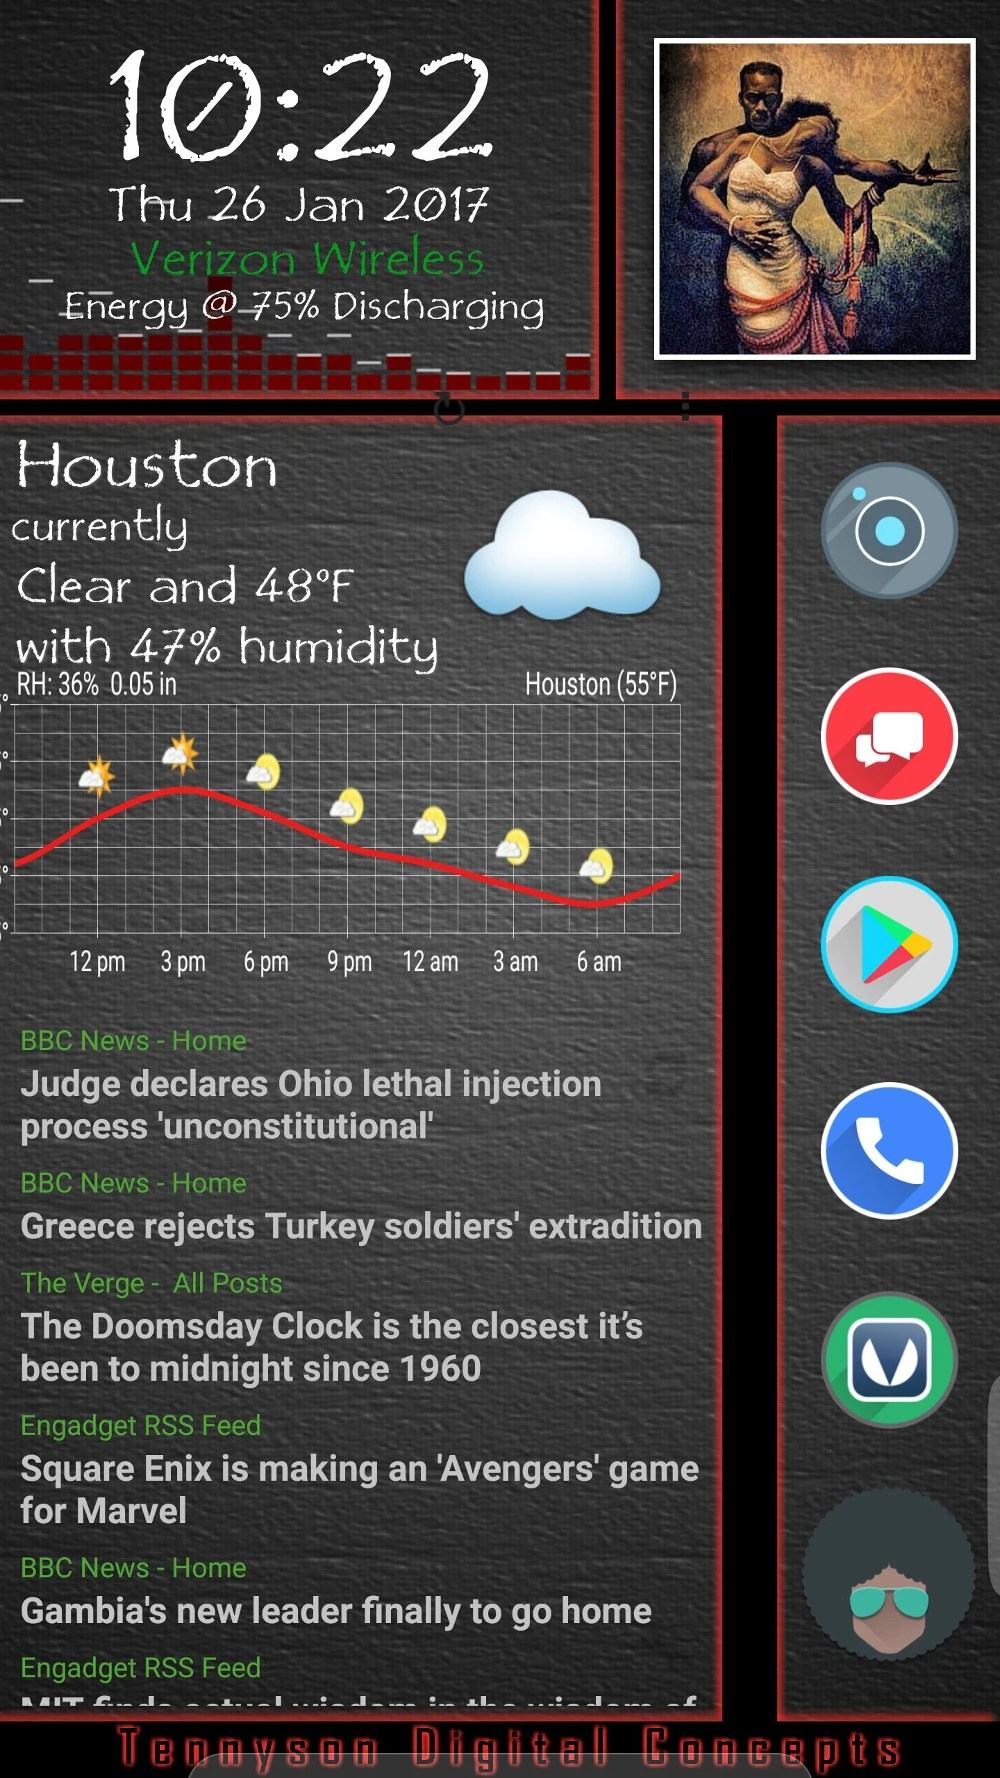 ... VU Meters Music Meters / Visualizer, Velur Icon Pack Main Icons,  CircleLauncher Pro, Retrorika Icon For Circle Launcher, Simple RSS Widget  News Feeds.